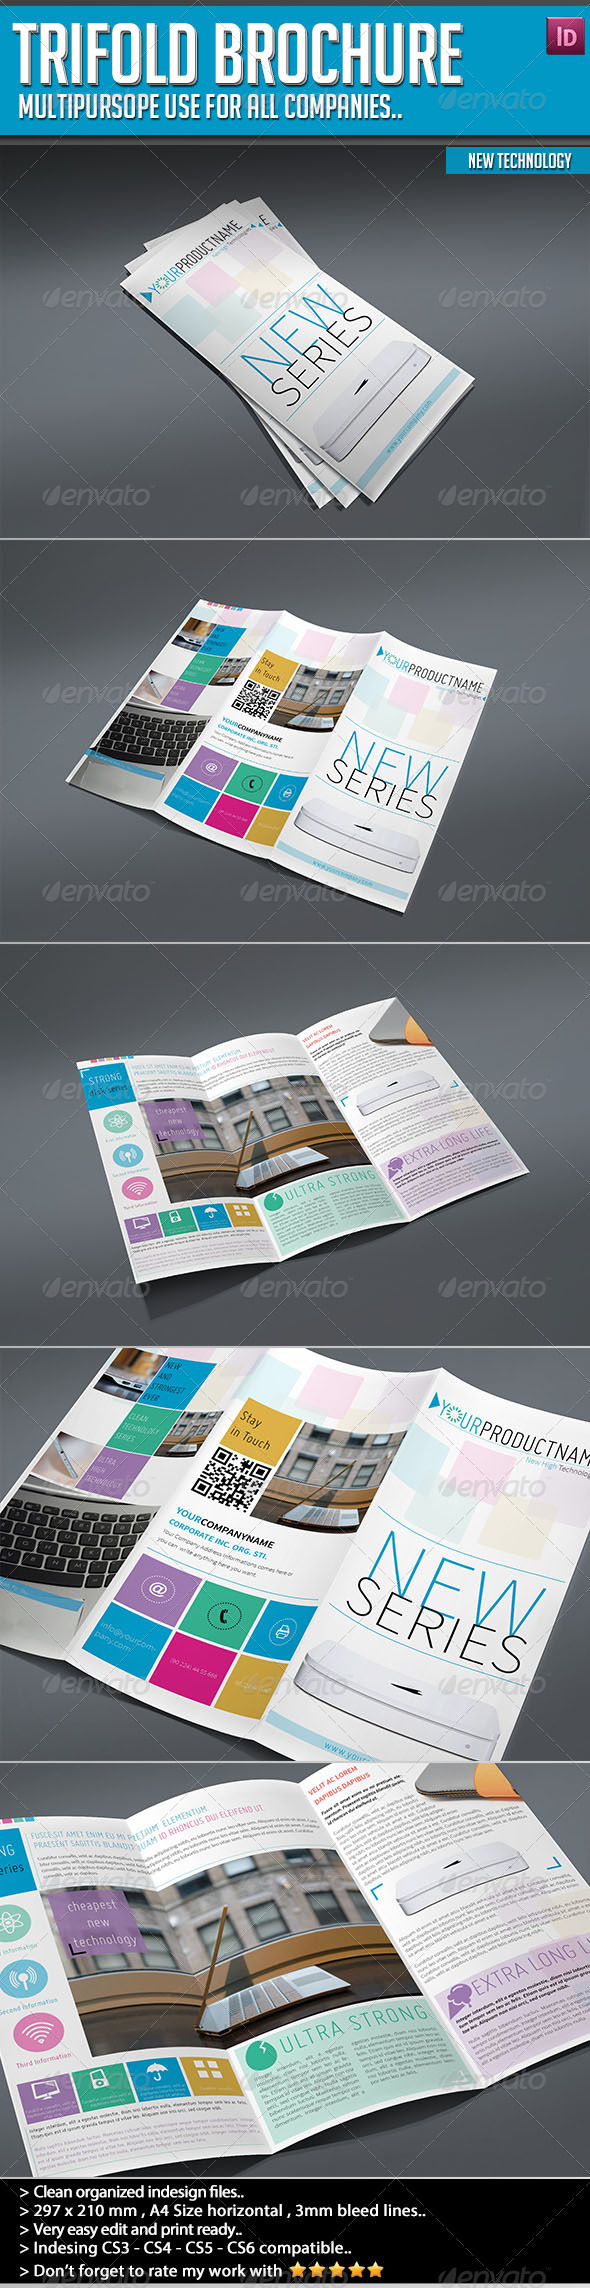 GraphicRiver Trifold Brochure New Technology 4931865